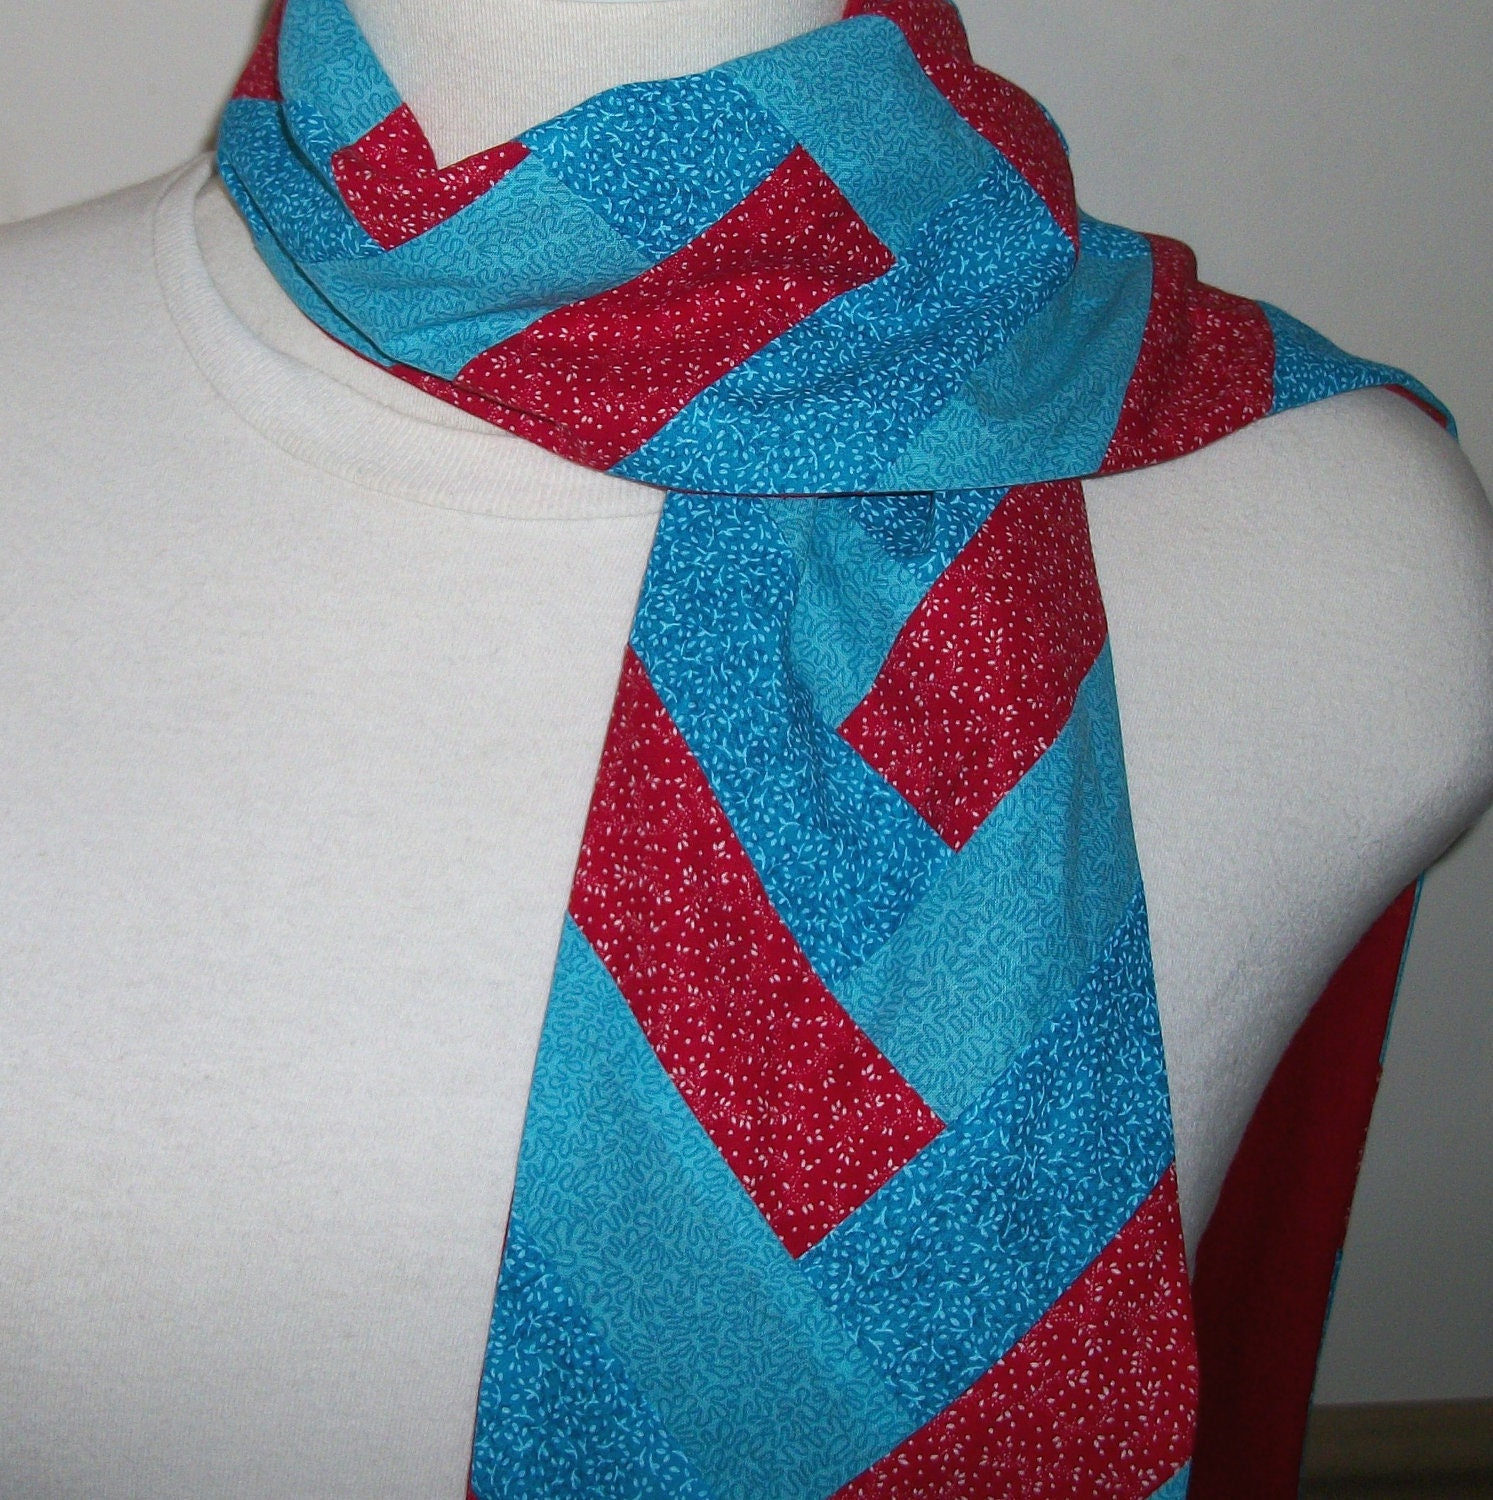 FREE SHIPPING///Crimson Red and Turquoise Blue Reversible Scarf by ps Blessed///Friendship Braid